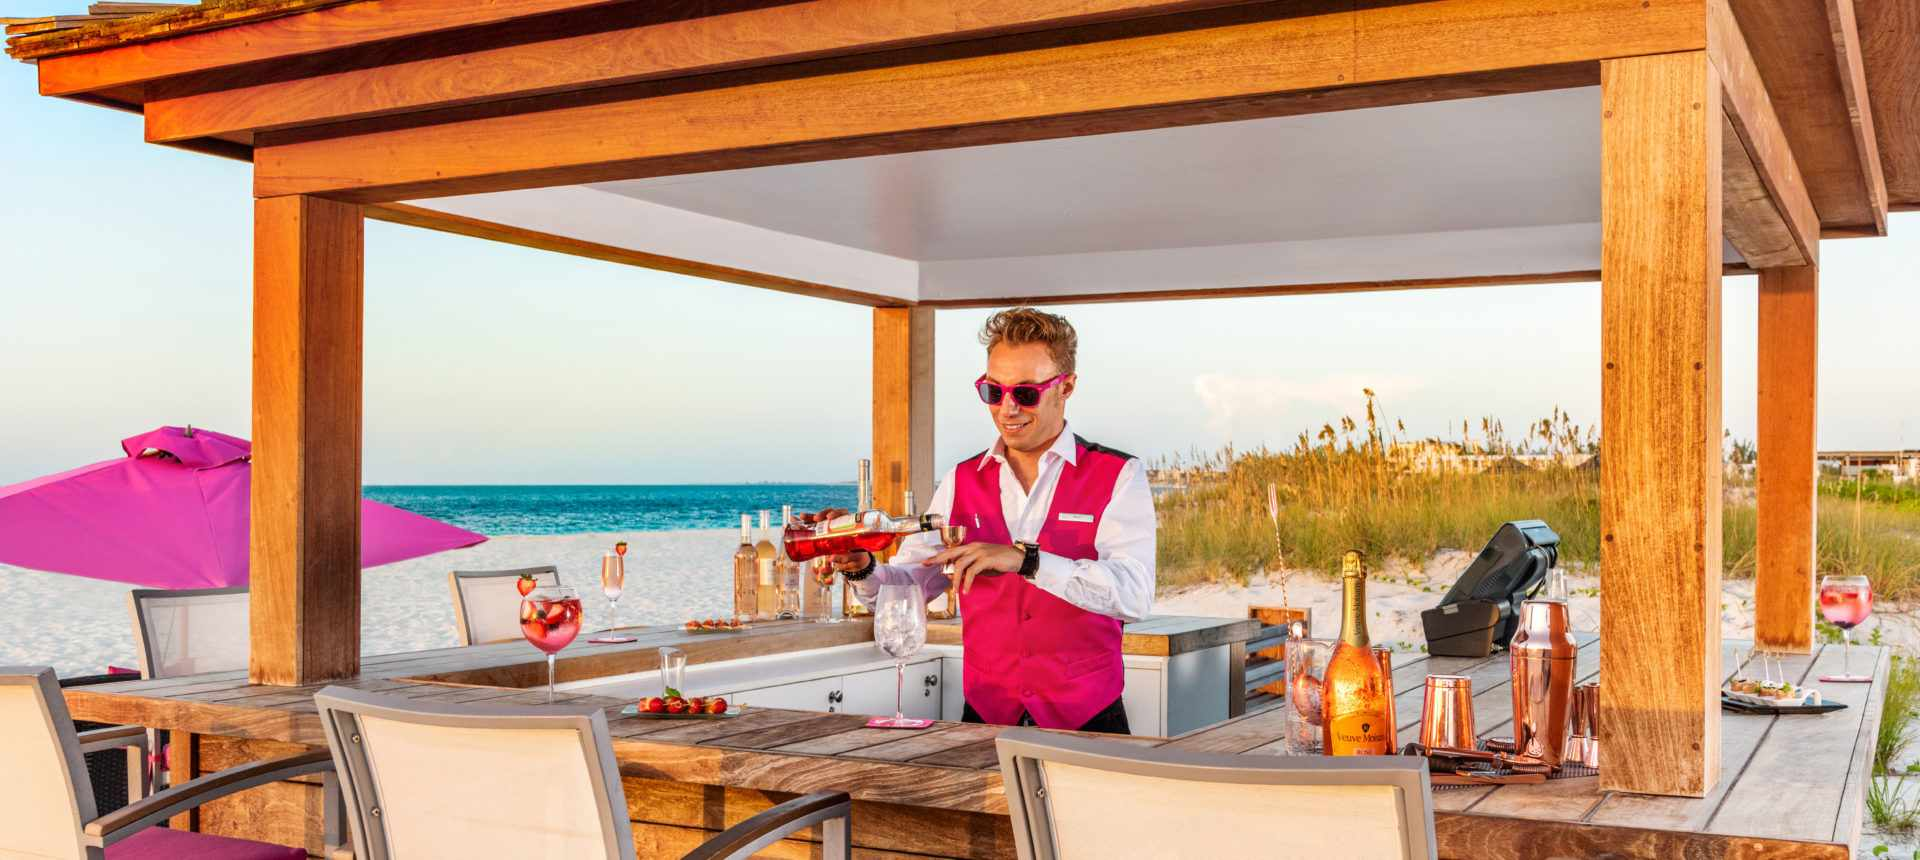 bartender in a pink vest and sunglasses mixing a drink